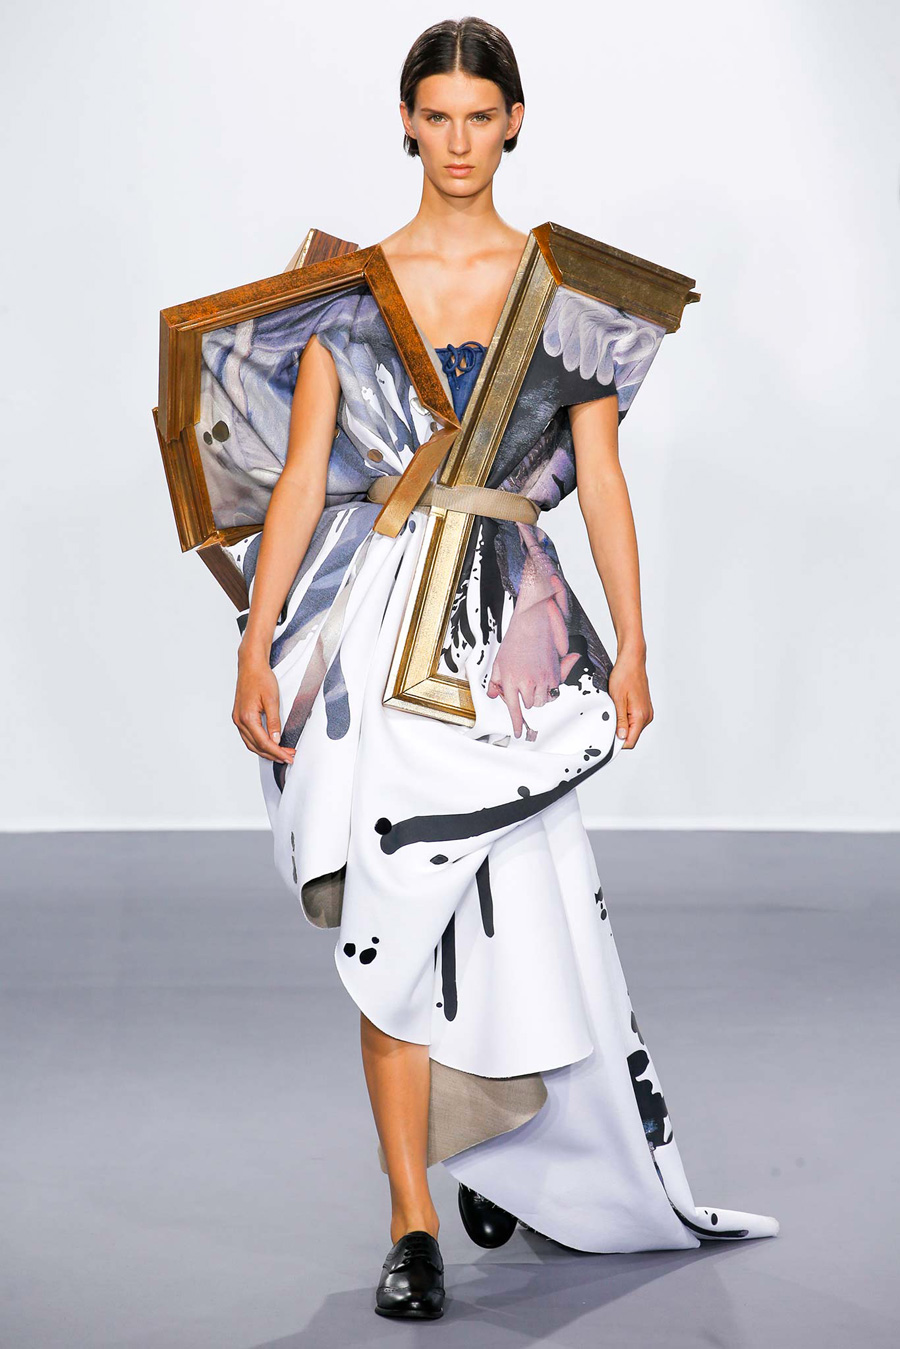 wearable object in fashion one more good one viktor rolf show 2015 canvas dress